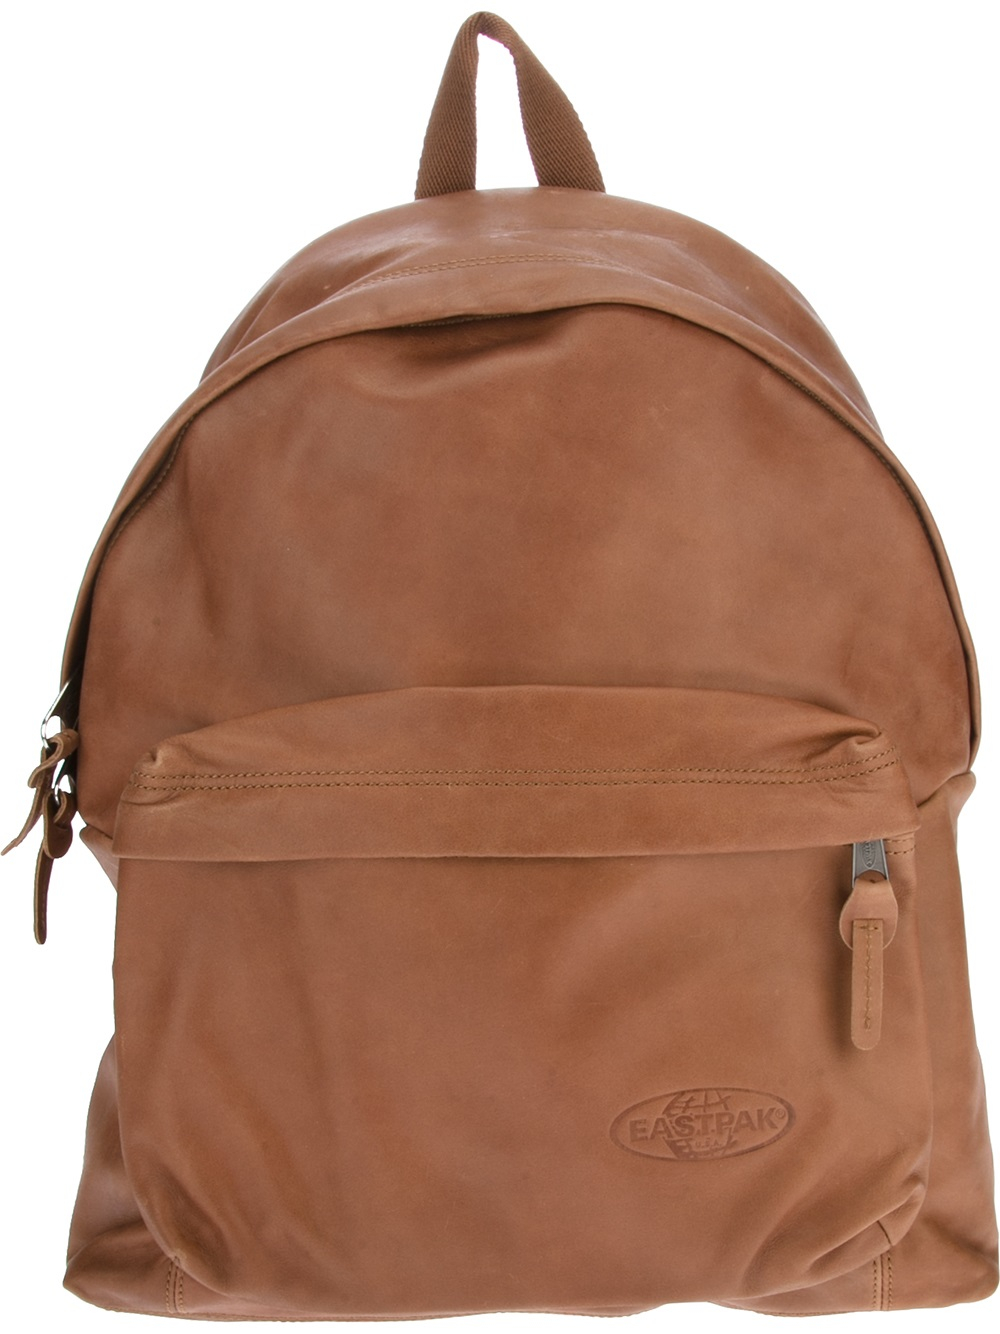 Leather Eastpak Backpack: Eastpak Classic Leather Backpack In Brown For Men